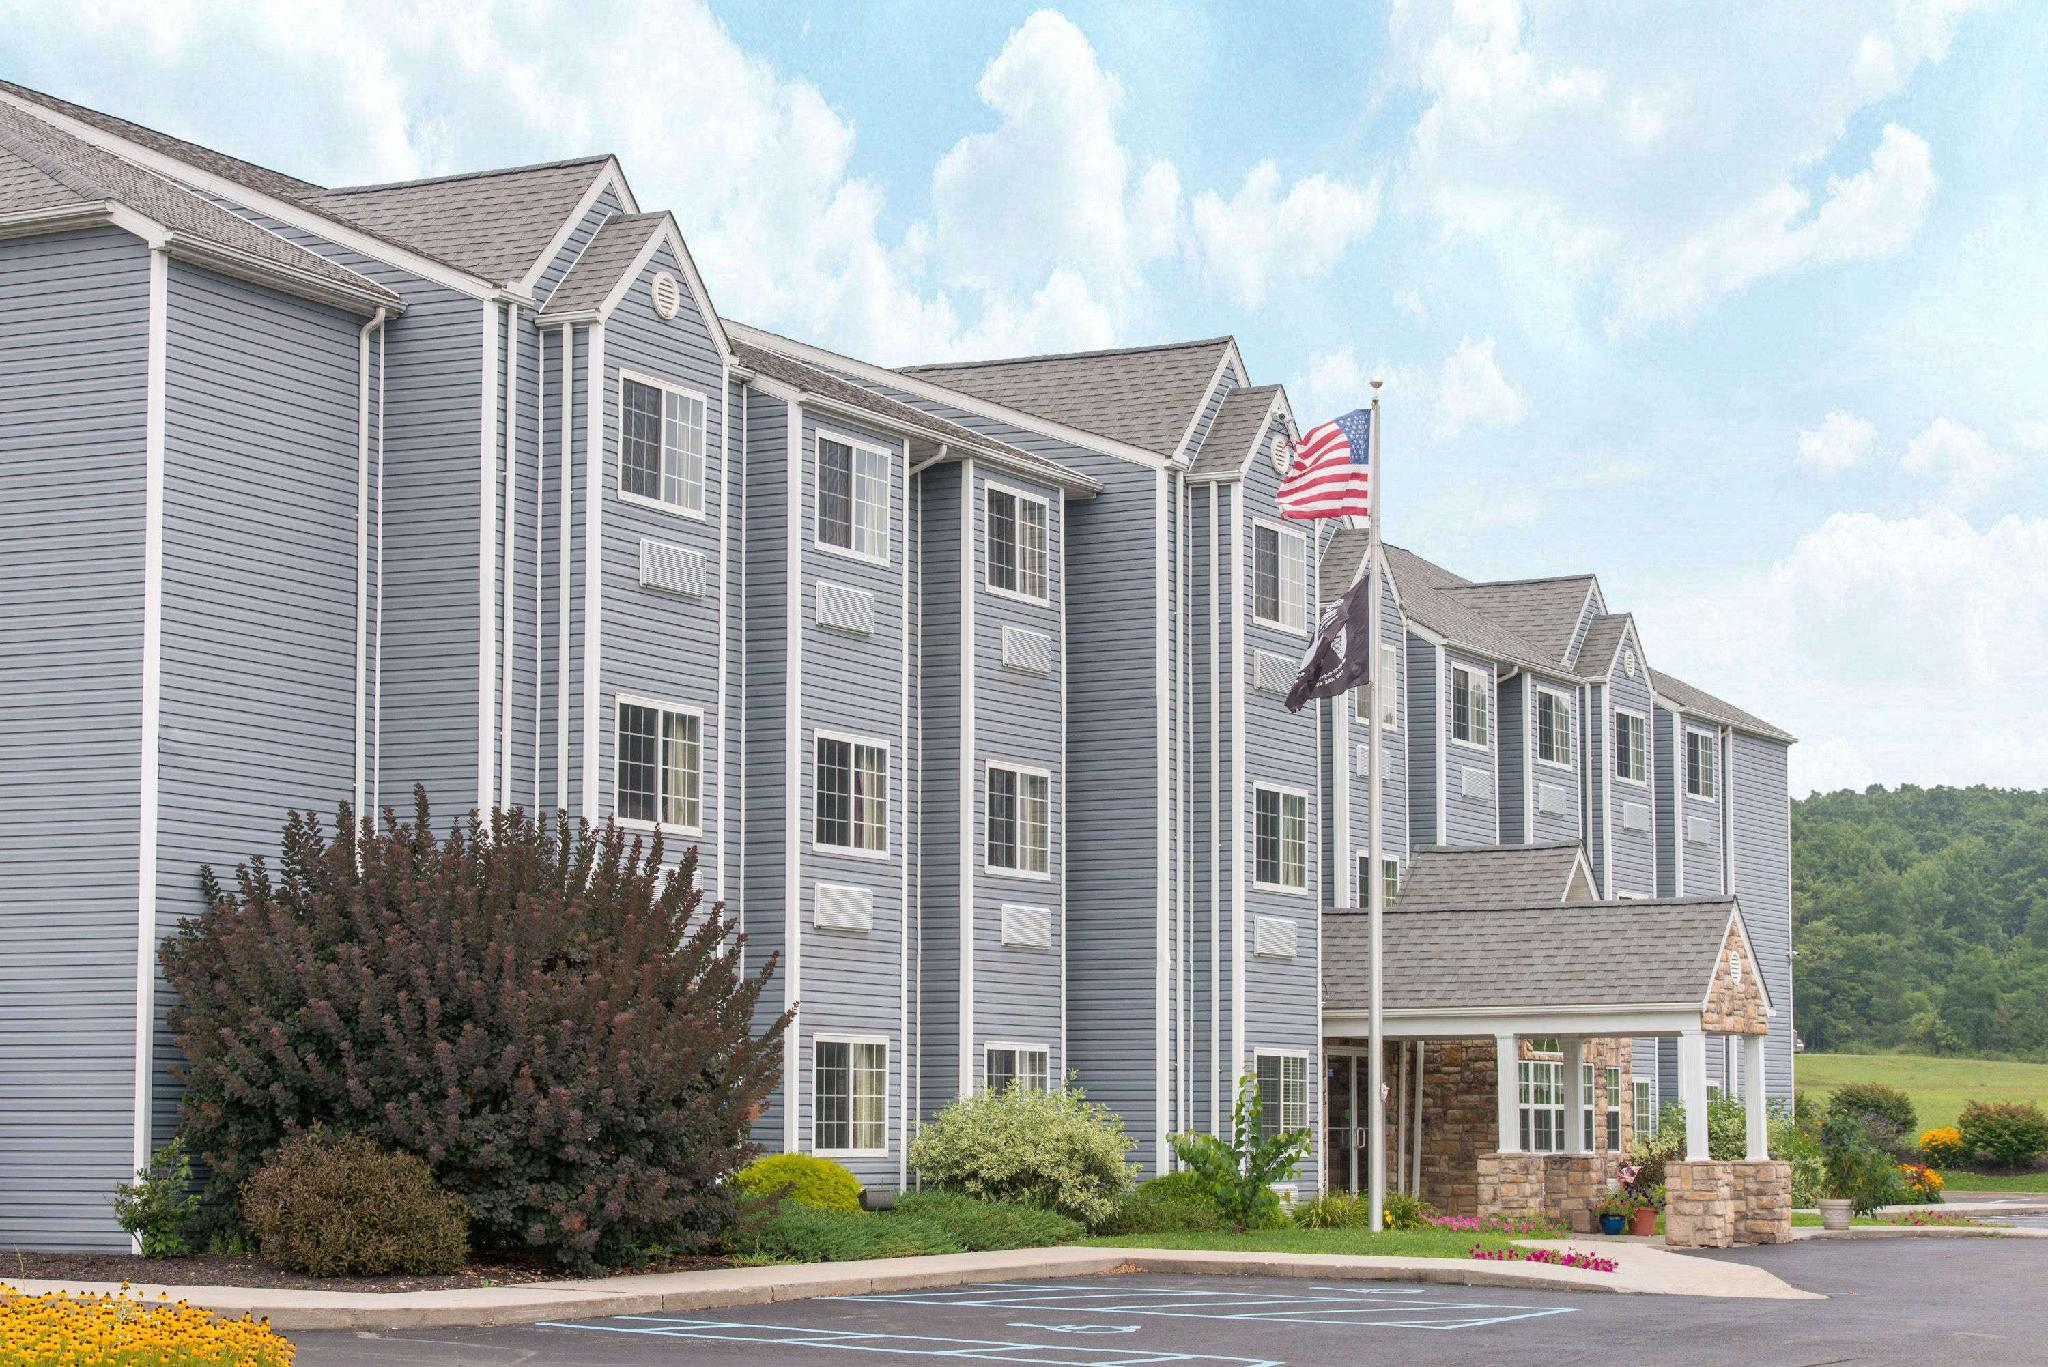 Microtel Inn And Suites By Wyndham Hazelton Bruceton Mills